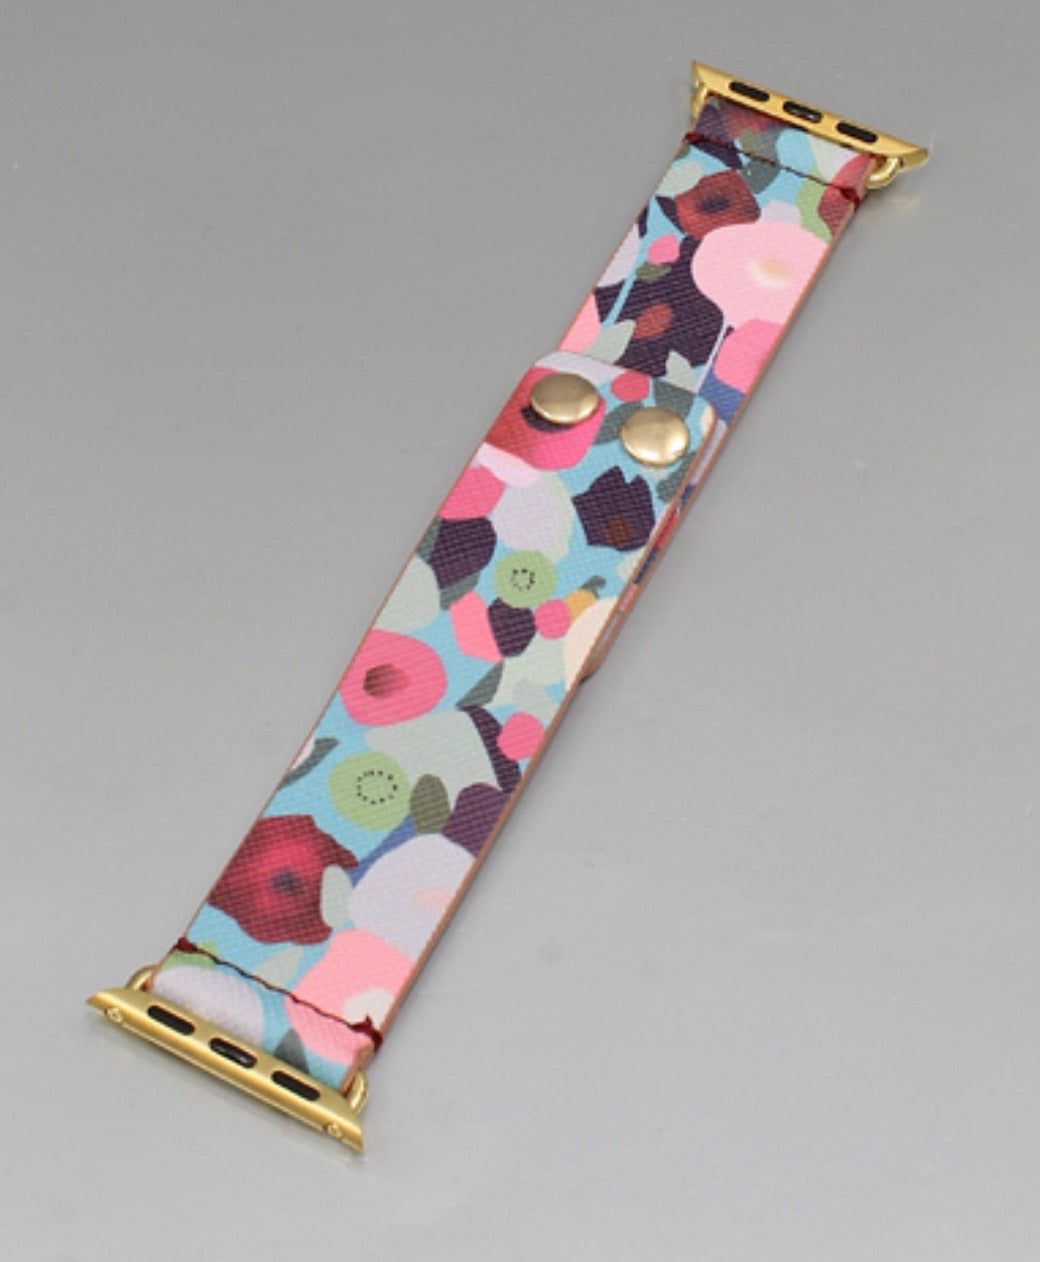 38mm Kiwi Apple Watch Band